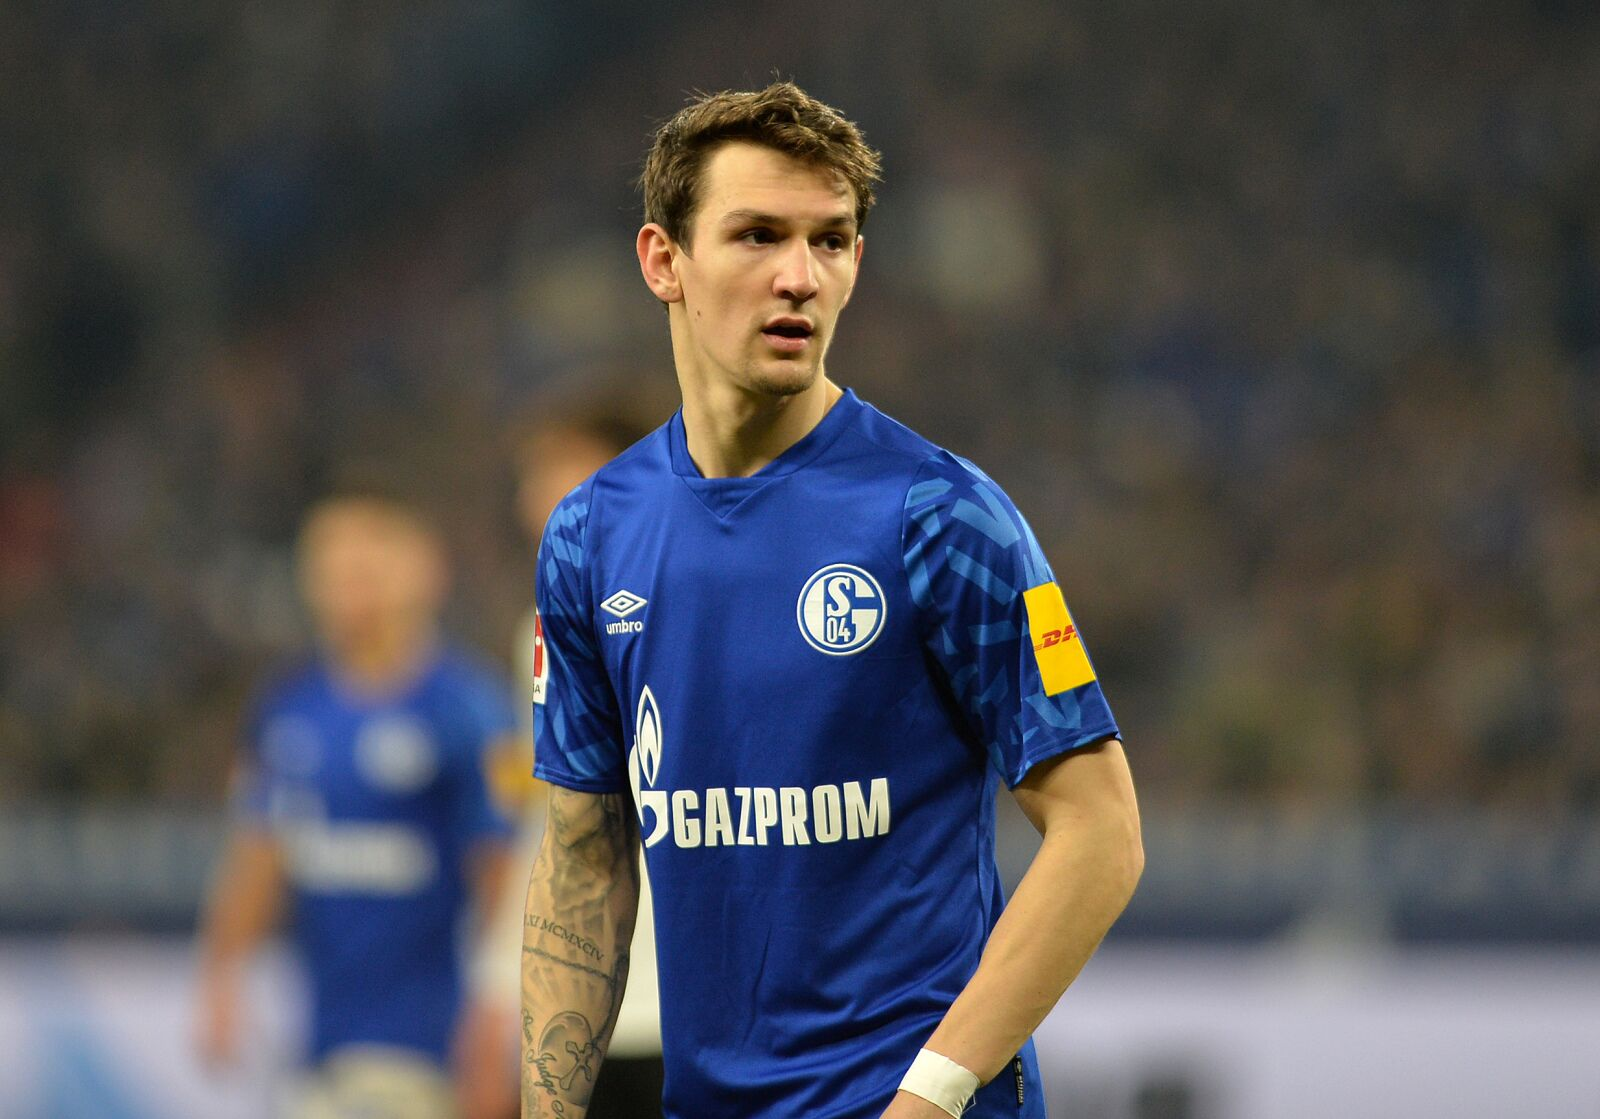 FC Schalke 04: Benito Raman misses Bayern game with infection